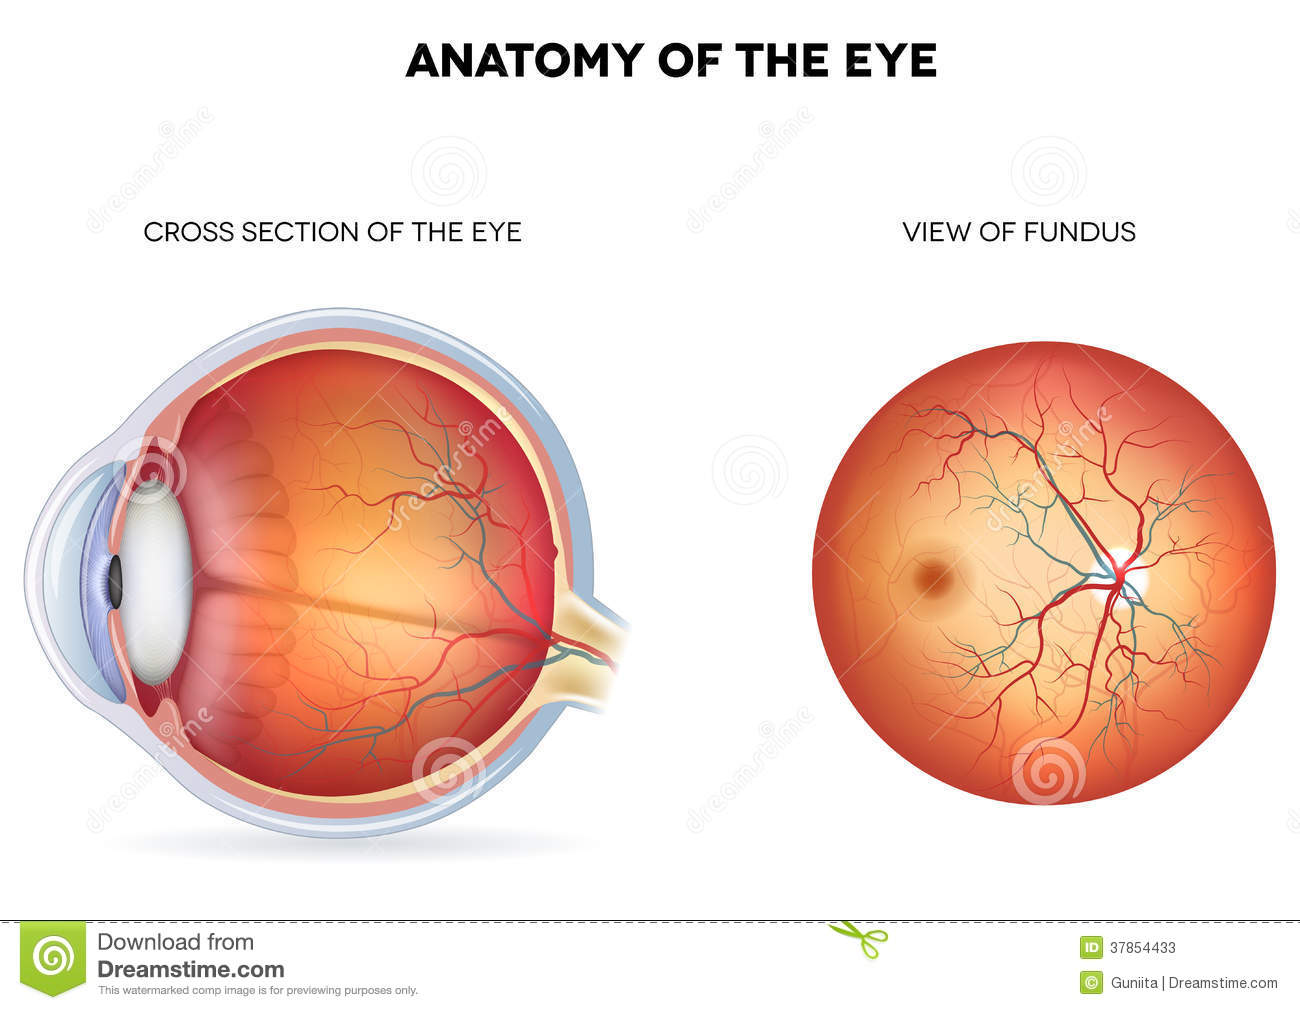 Anatomy of the eye cross section and view of fund stock photos